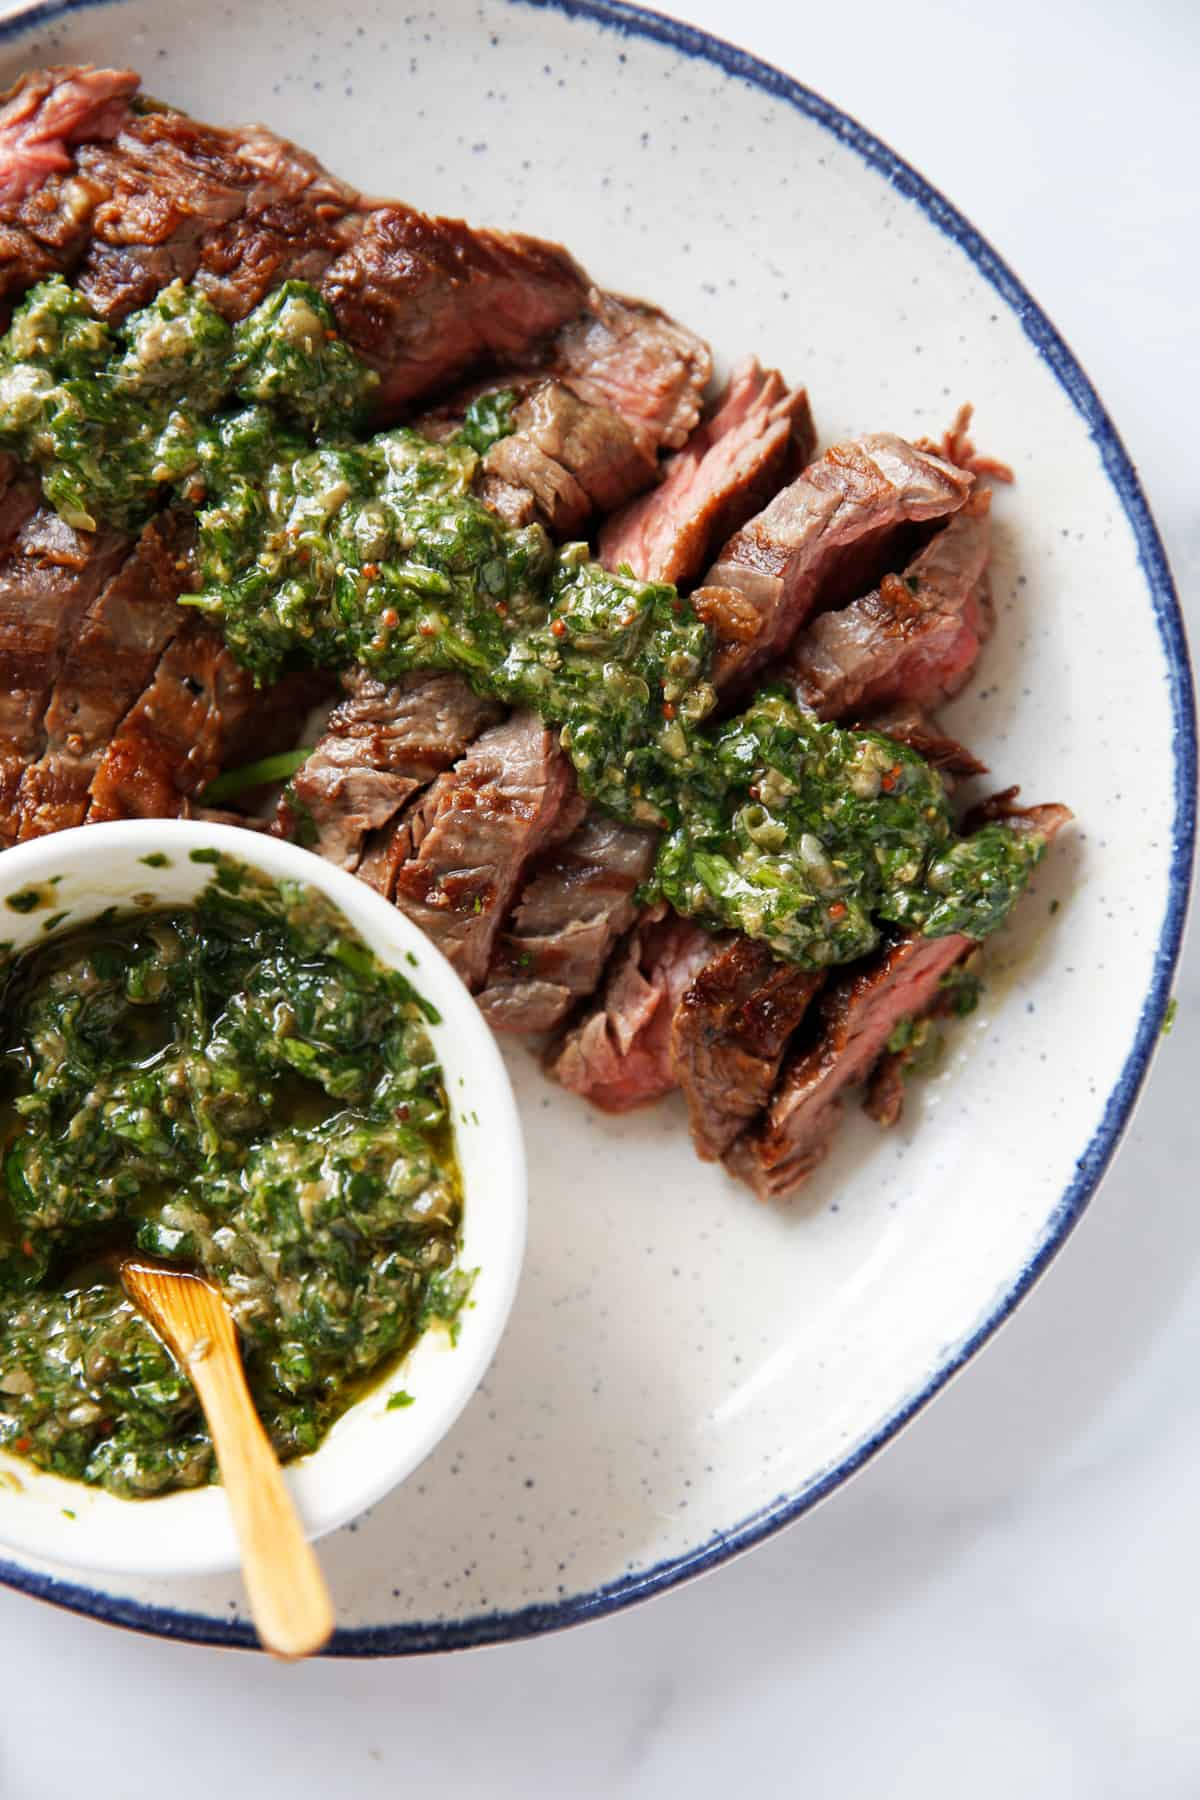 Grilled skirt steak with salsa verde